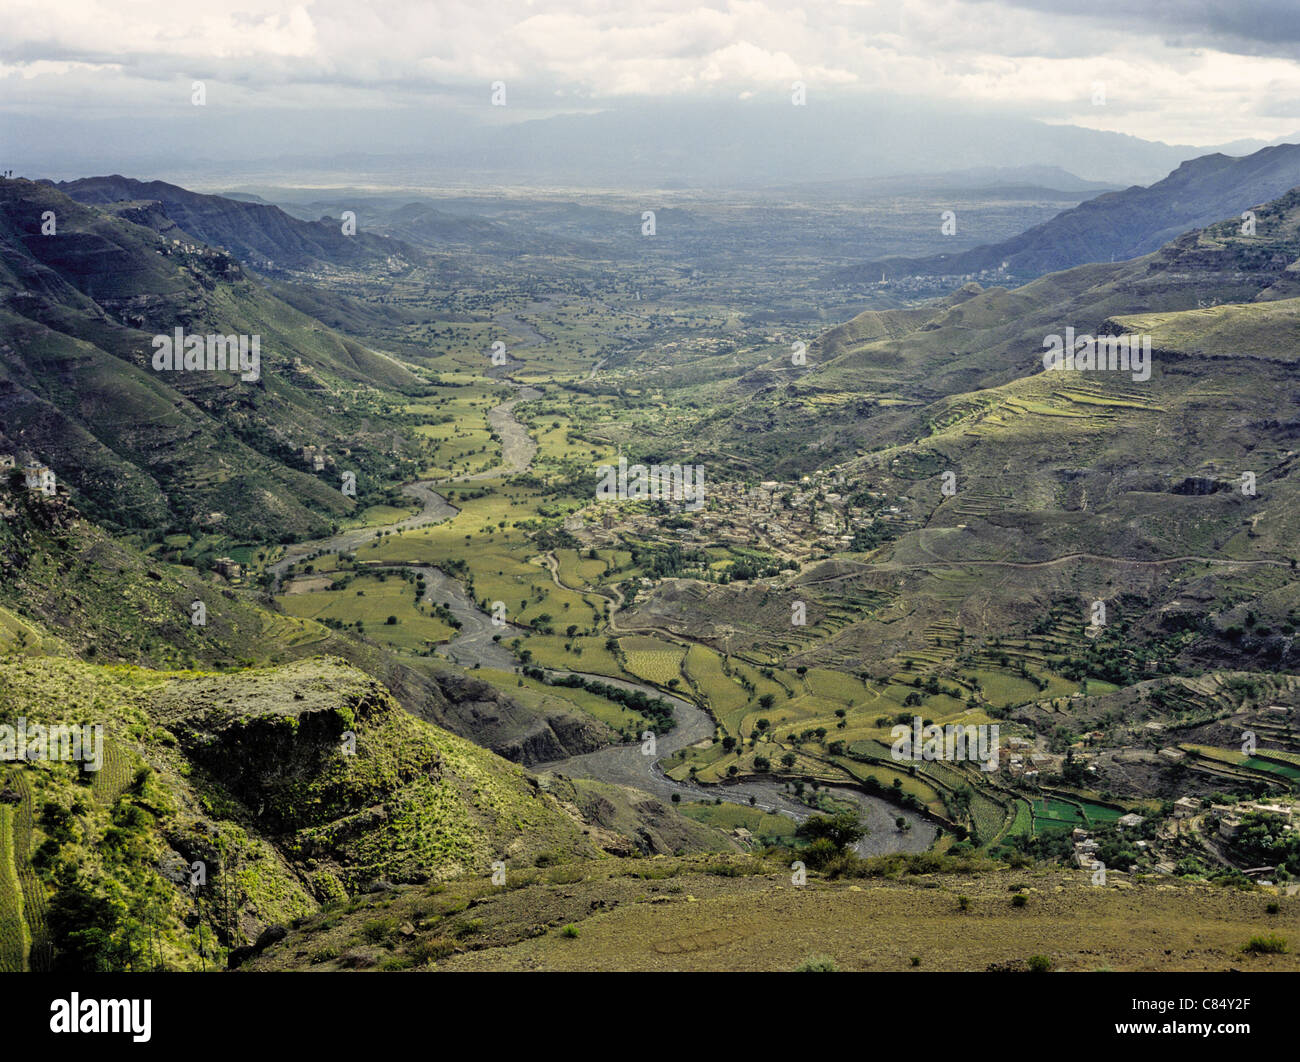 Mountains and farmland in Ta'izz Governorate, Yemen - Stock Image